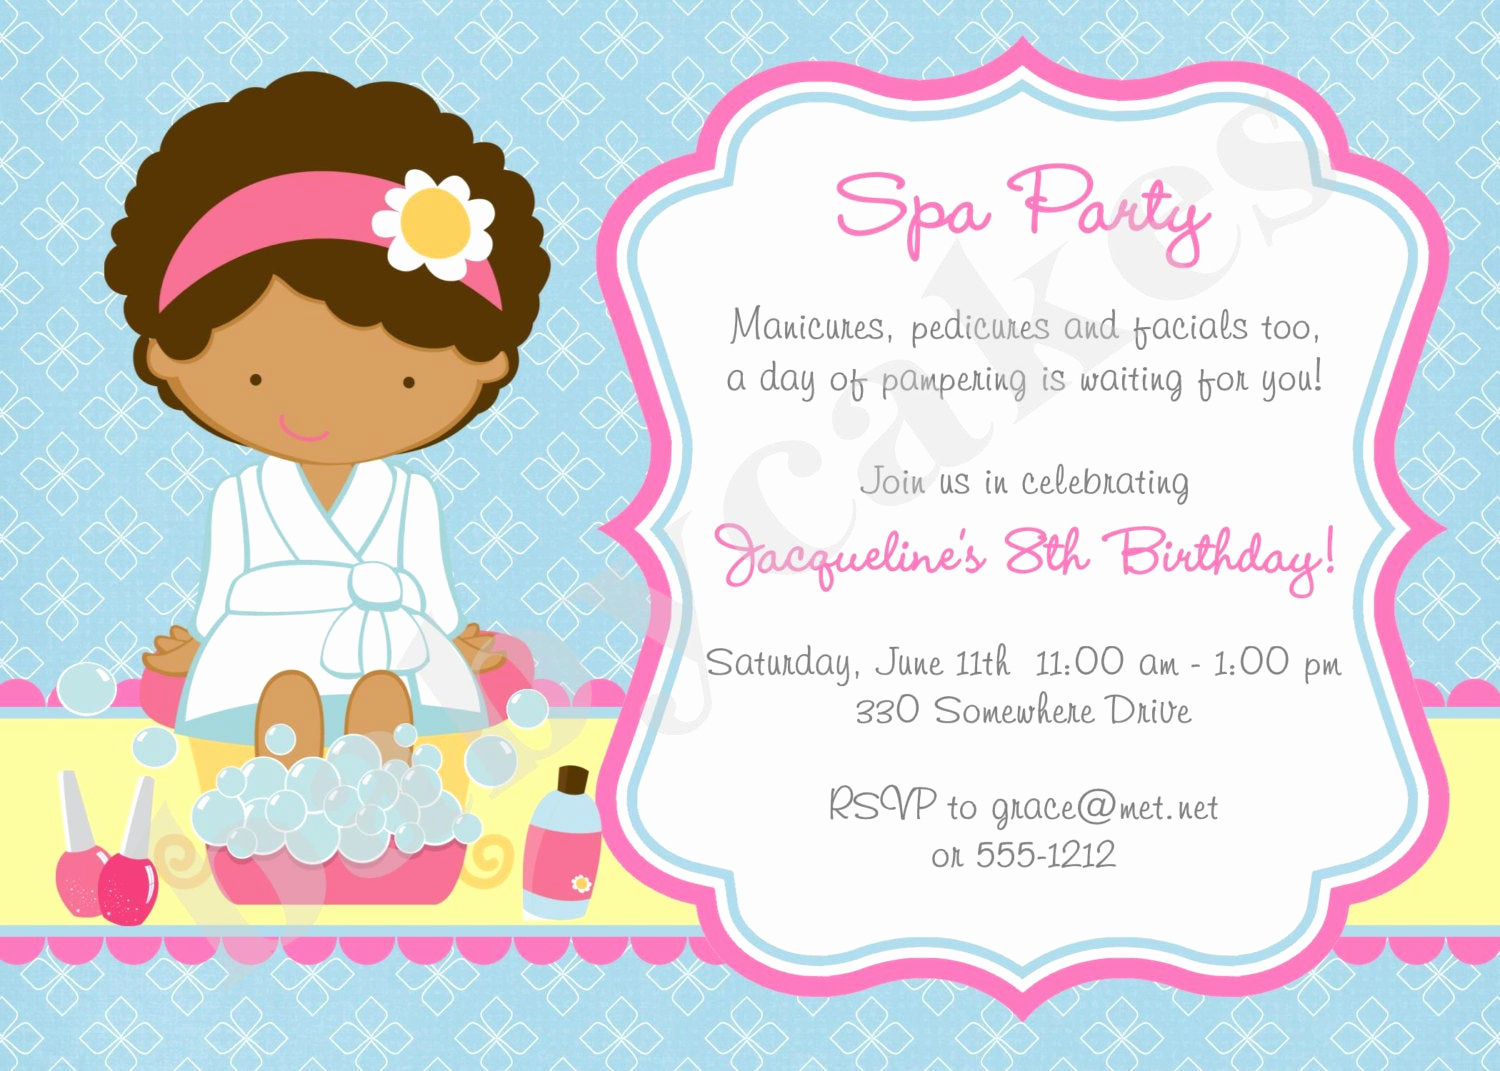 Spa Party Invitation Wording Fresh Spa Party Invitation Spa Birthday Party Invitation Invite Spa